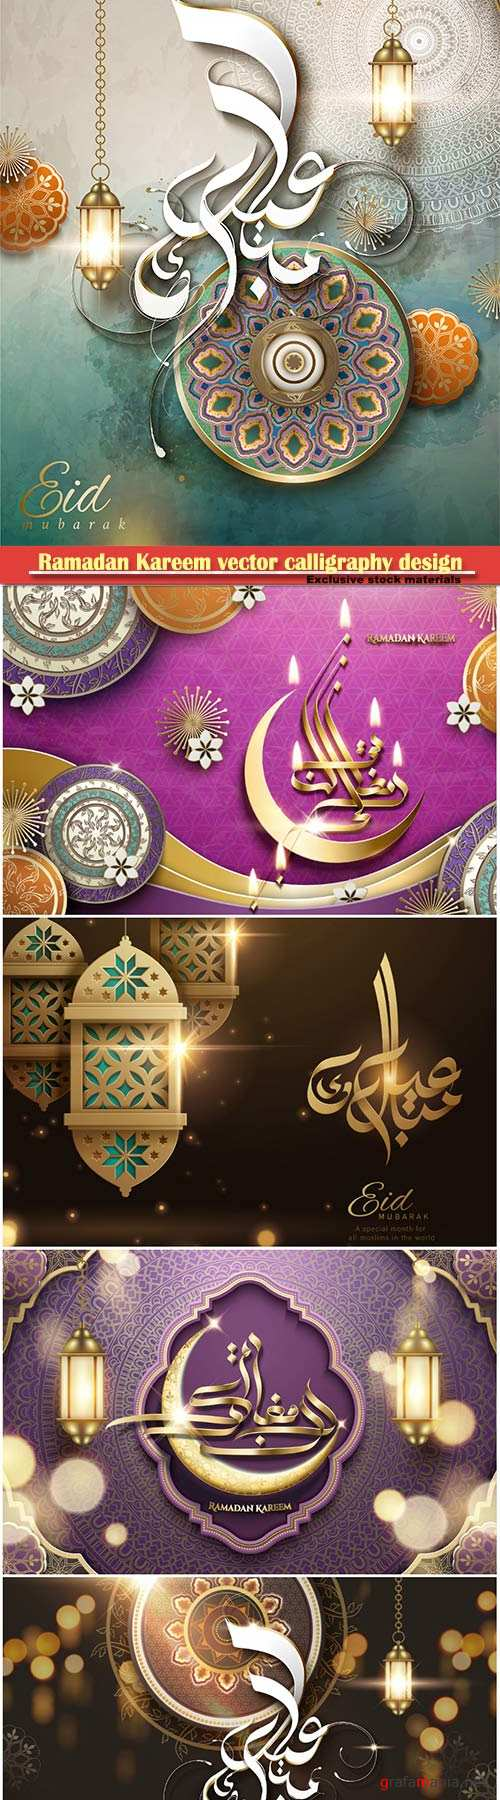 Ramadan Kareem vector calligraphy design with decorative floral pattern, mosque silhouette, crescent and glittering islamic background # 31